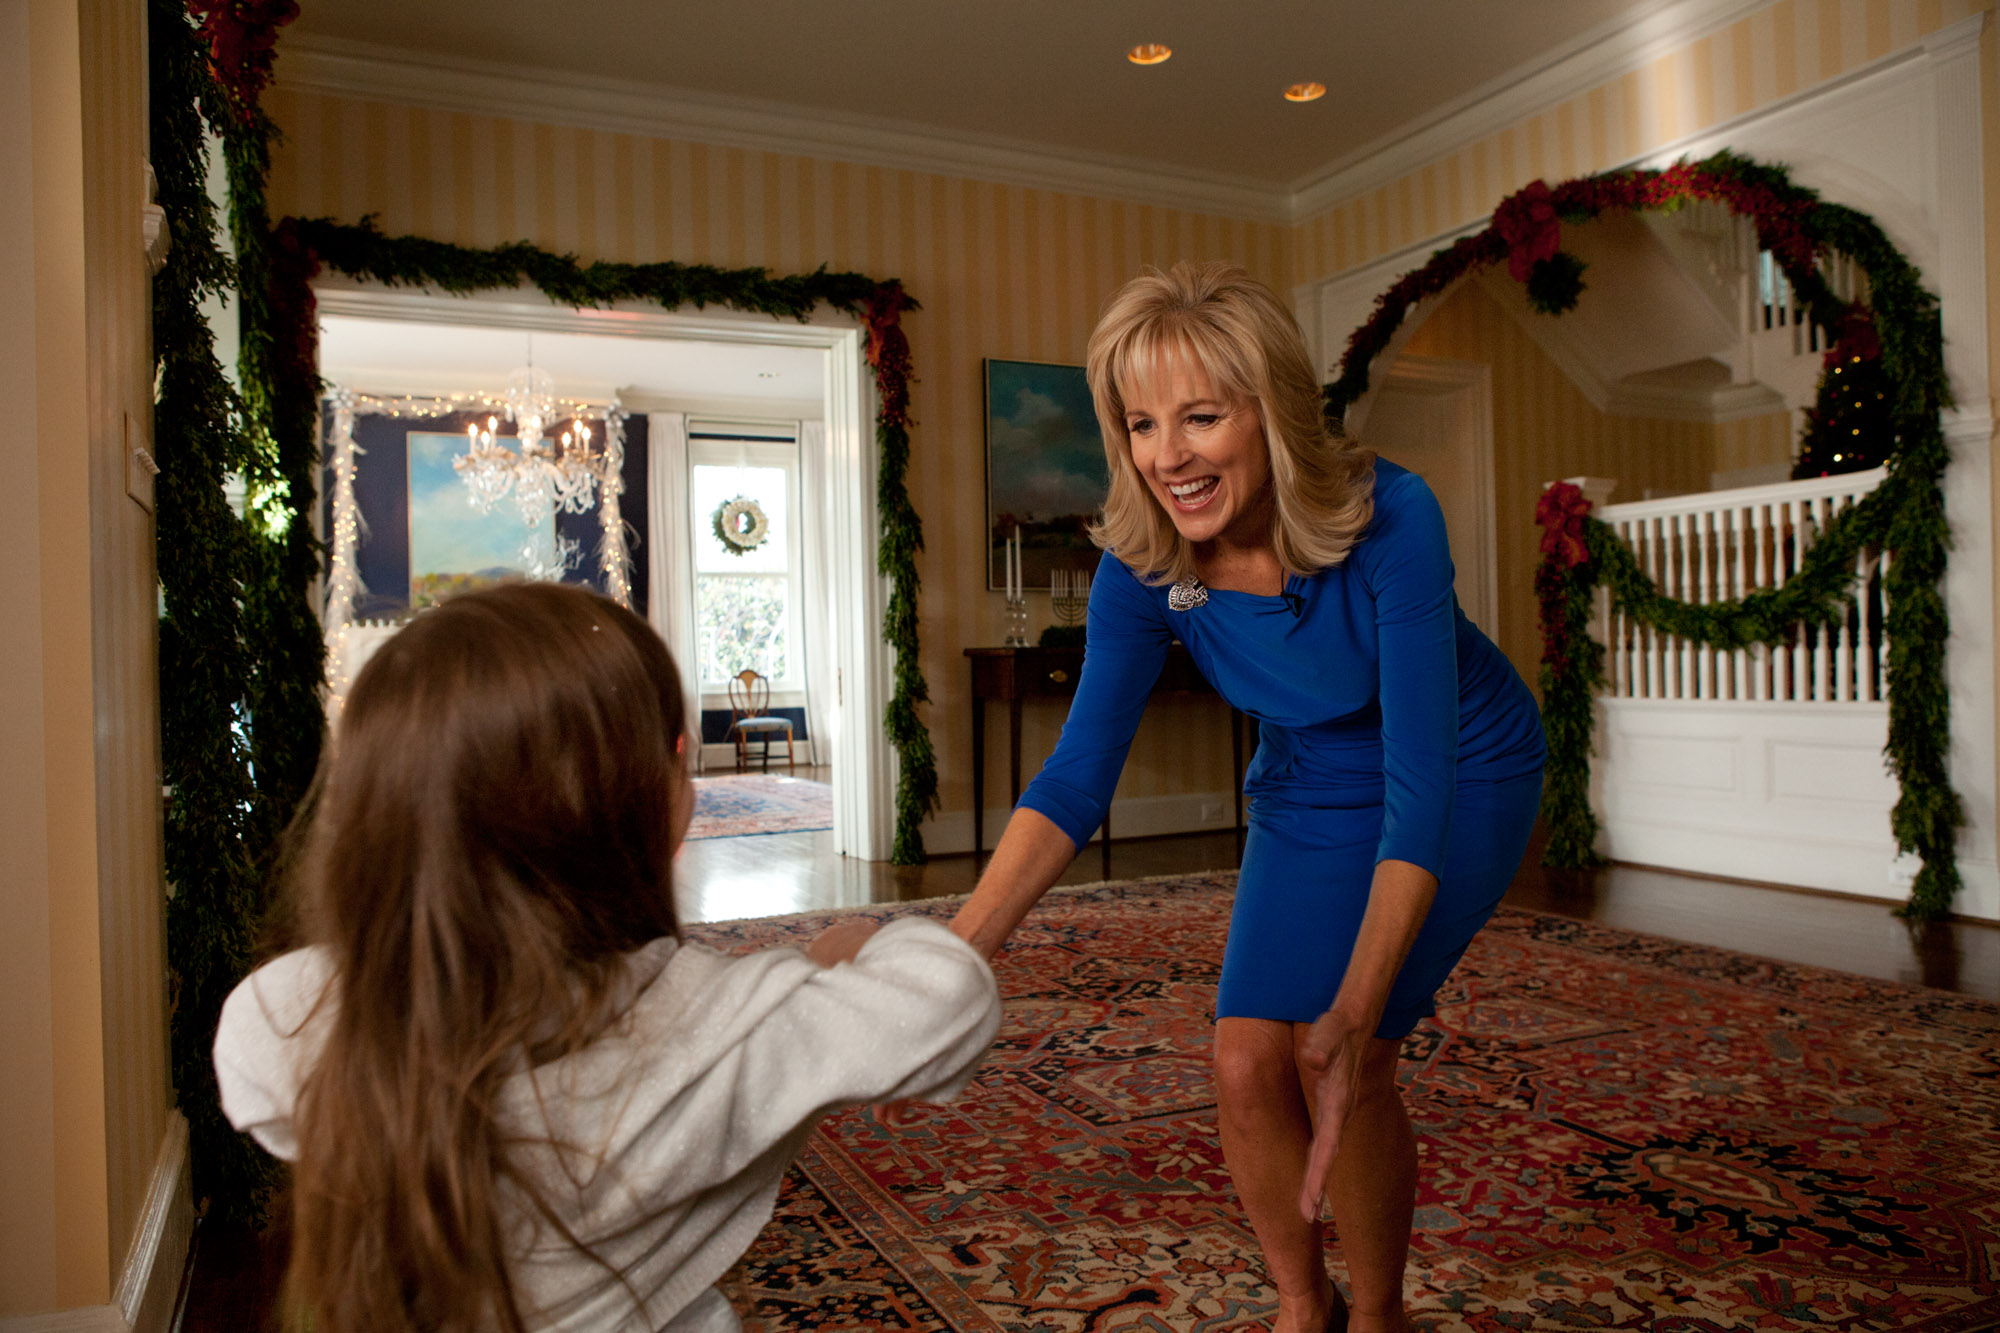 Dr. Jill Biden greets a student arriving at the Vice President's Residence